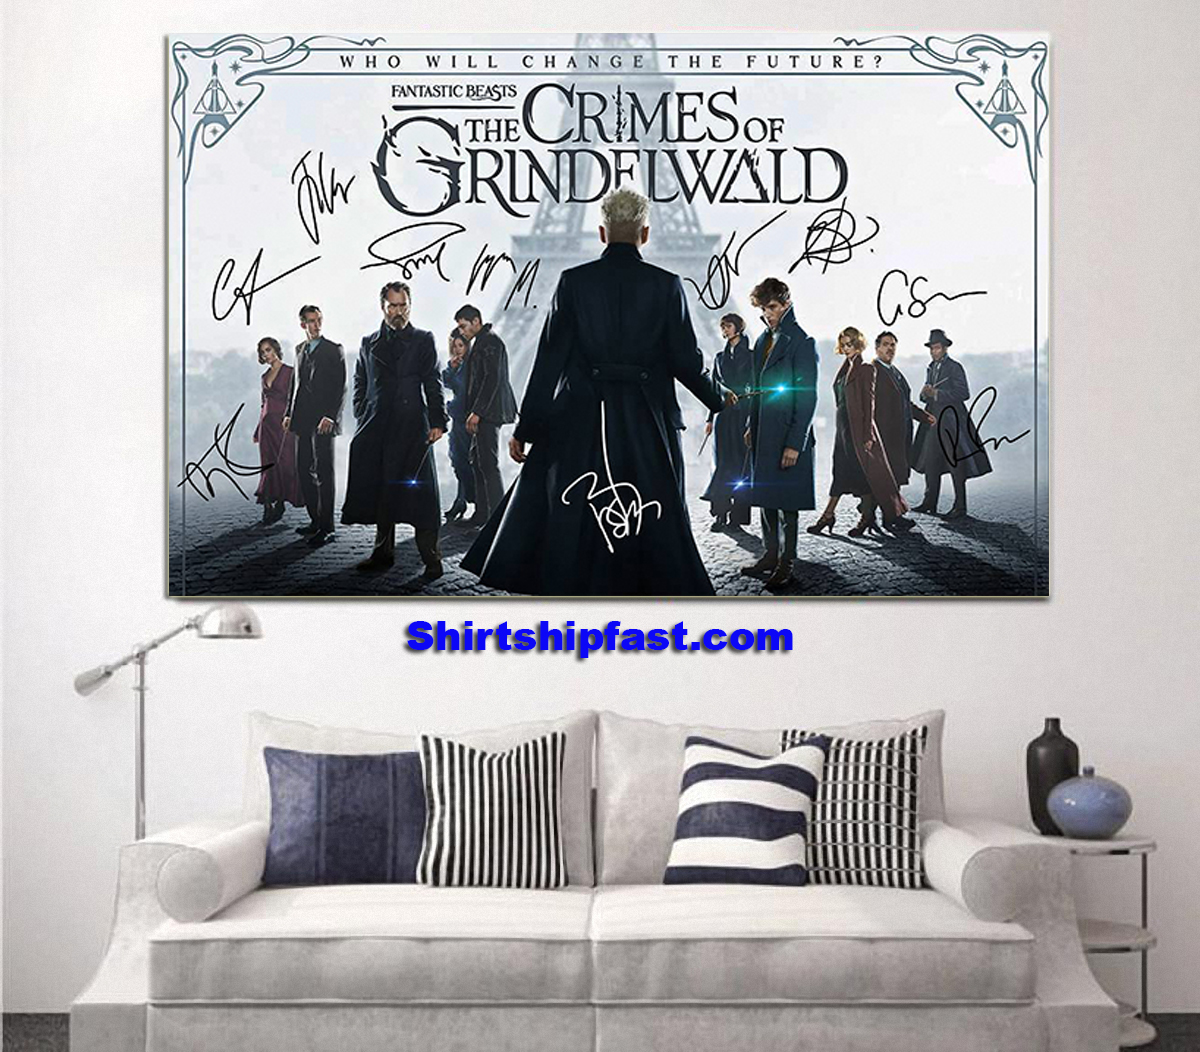 Fantatic beasts The crimes of Grindelwald signature poster - Picture 1